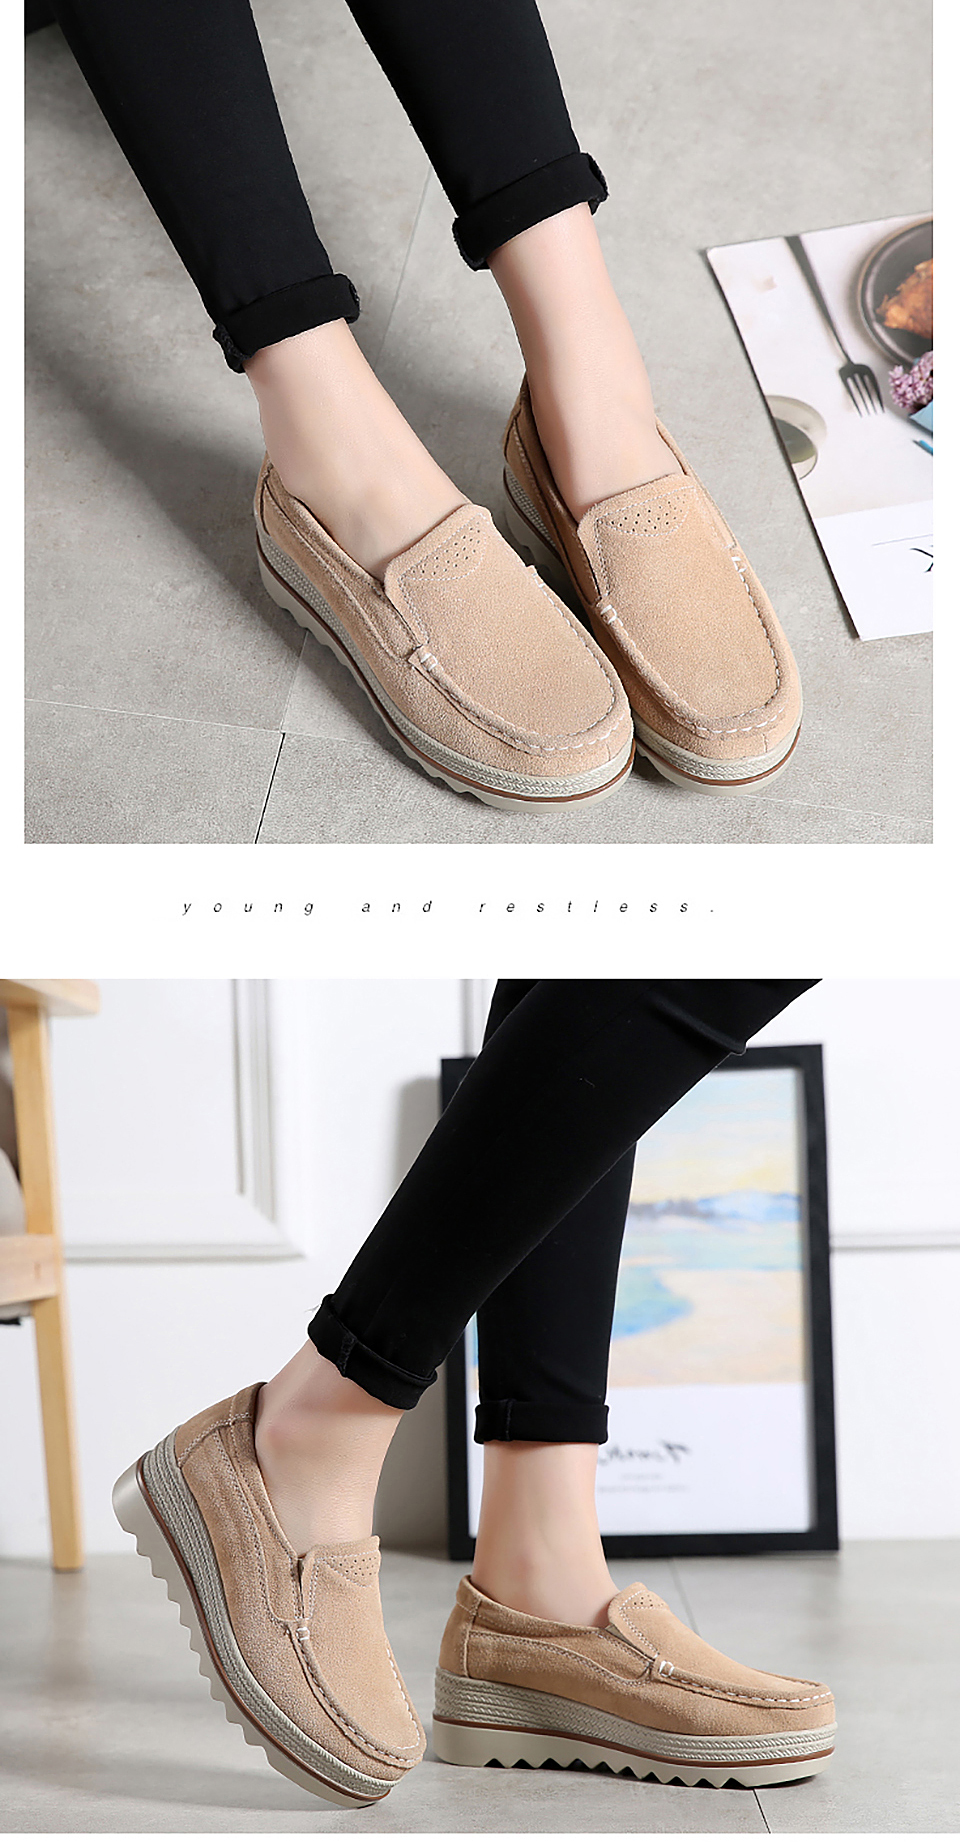 HTB1hGdQOXzqK1RjSZFoq6zfcXXaA 2019 Spring Women Flats Shoes Platform Sneakers Slip On Flats Leather Suede Ladies Loafers Moccasins Casual Shoes Women Creepers